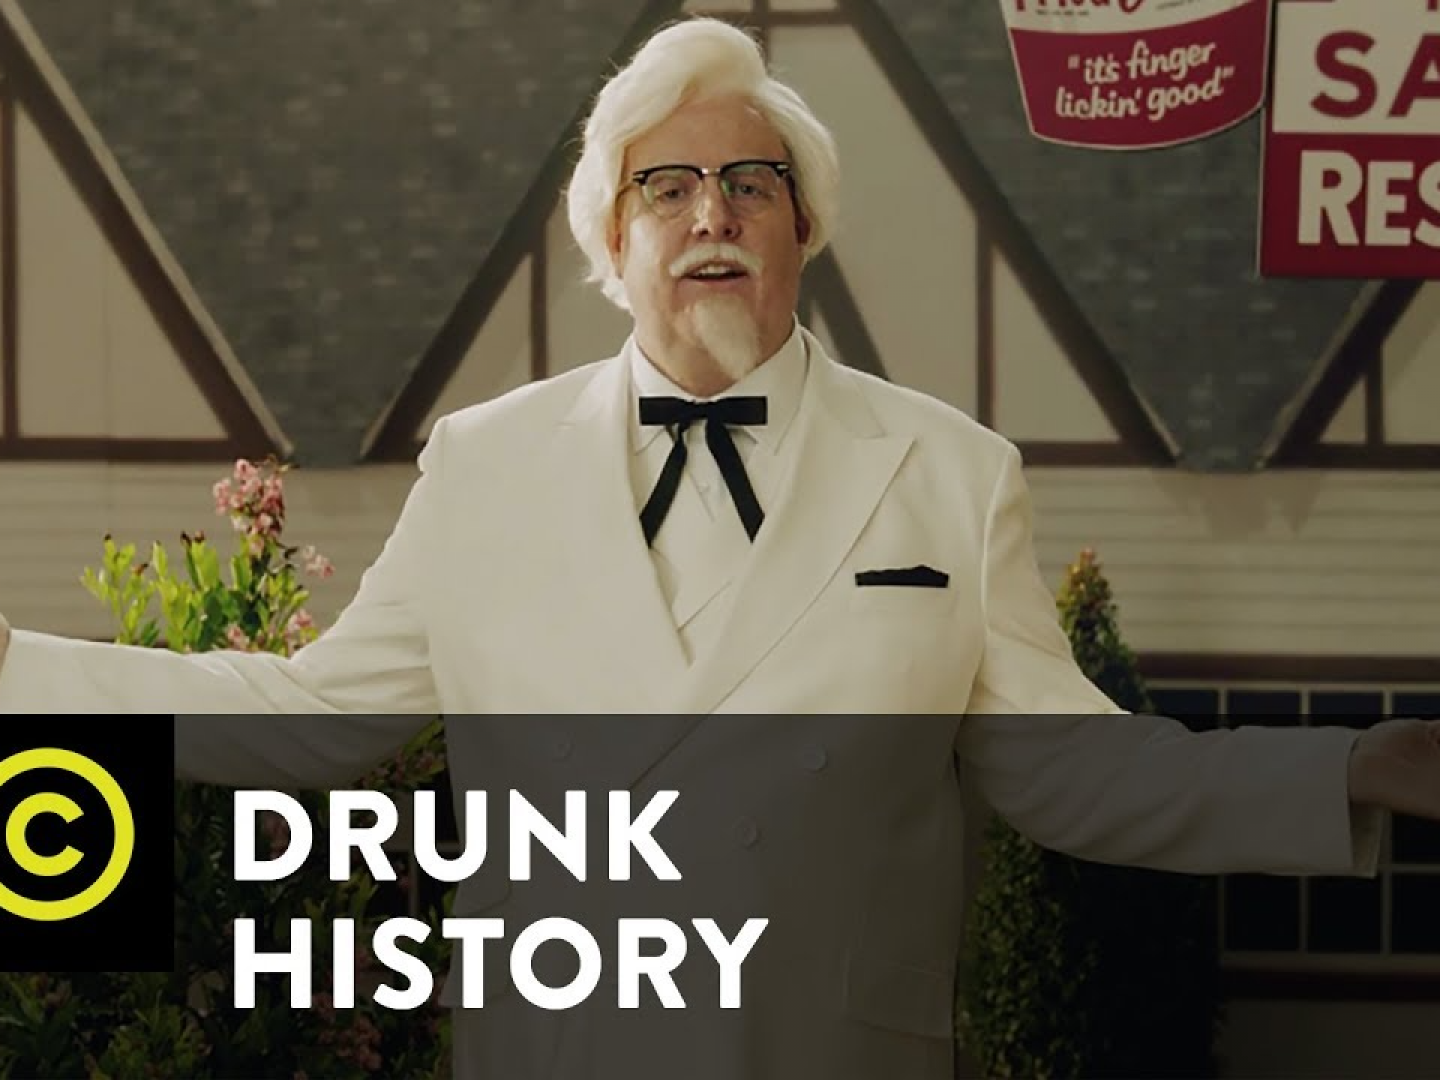 Drunk History Presents: The History of Colonel Sanders Thumbnail